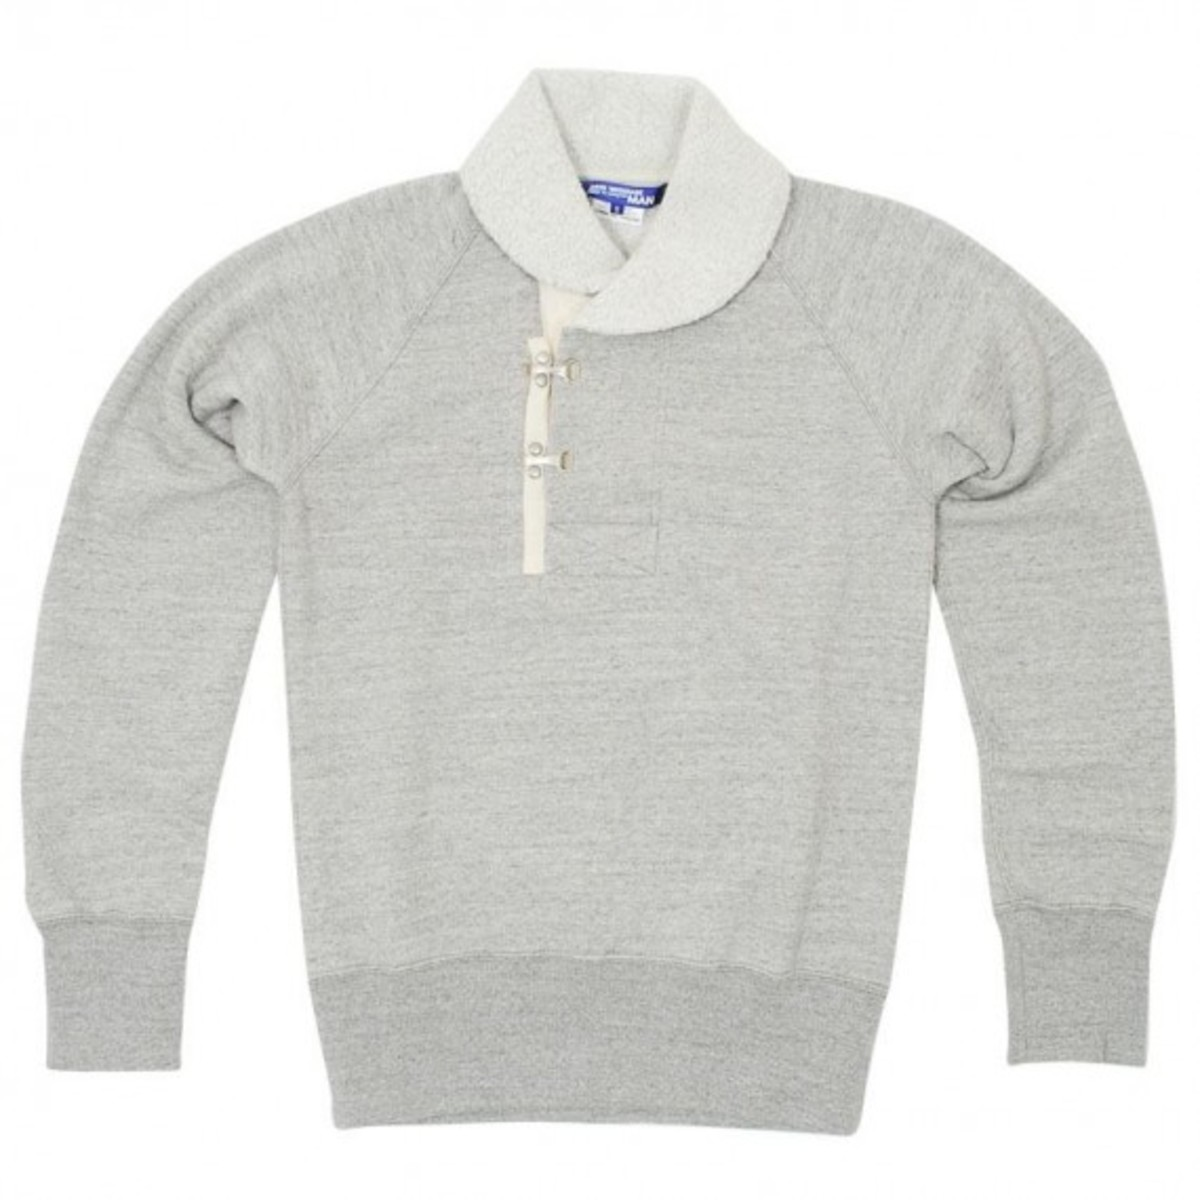 jersey-clip-sweat-01